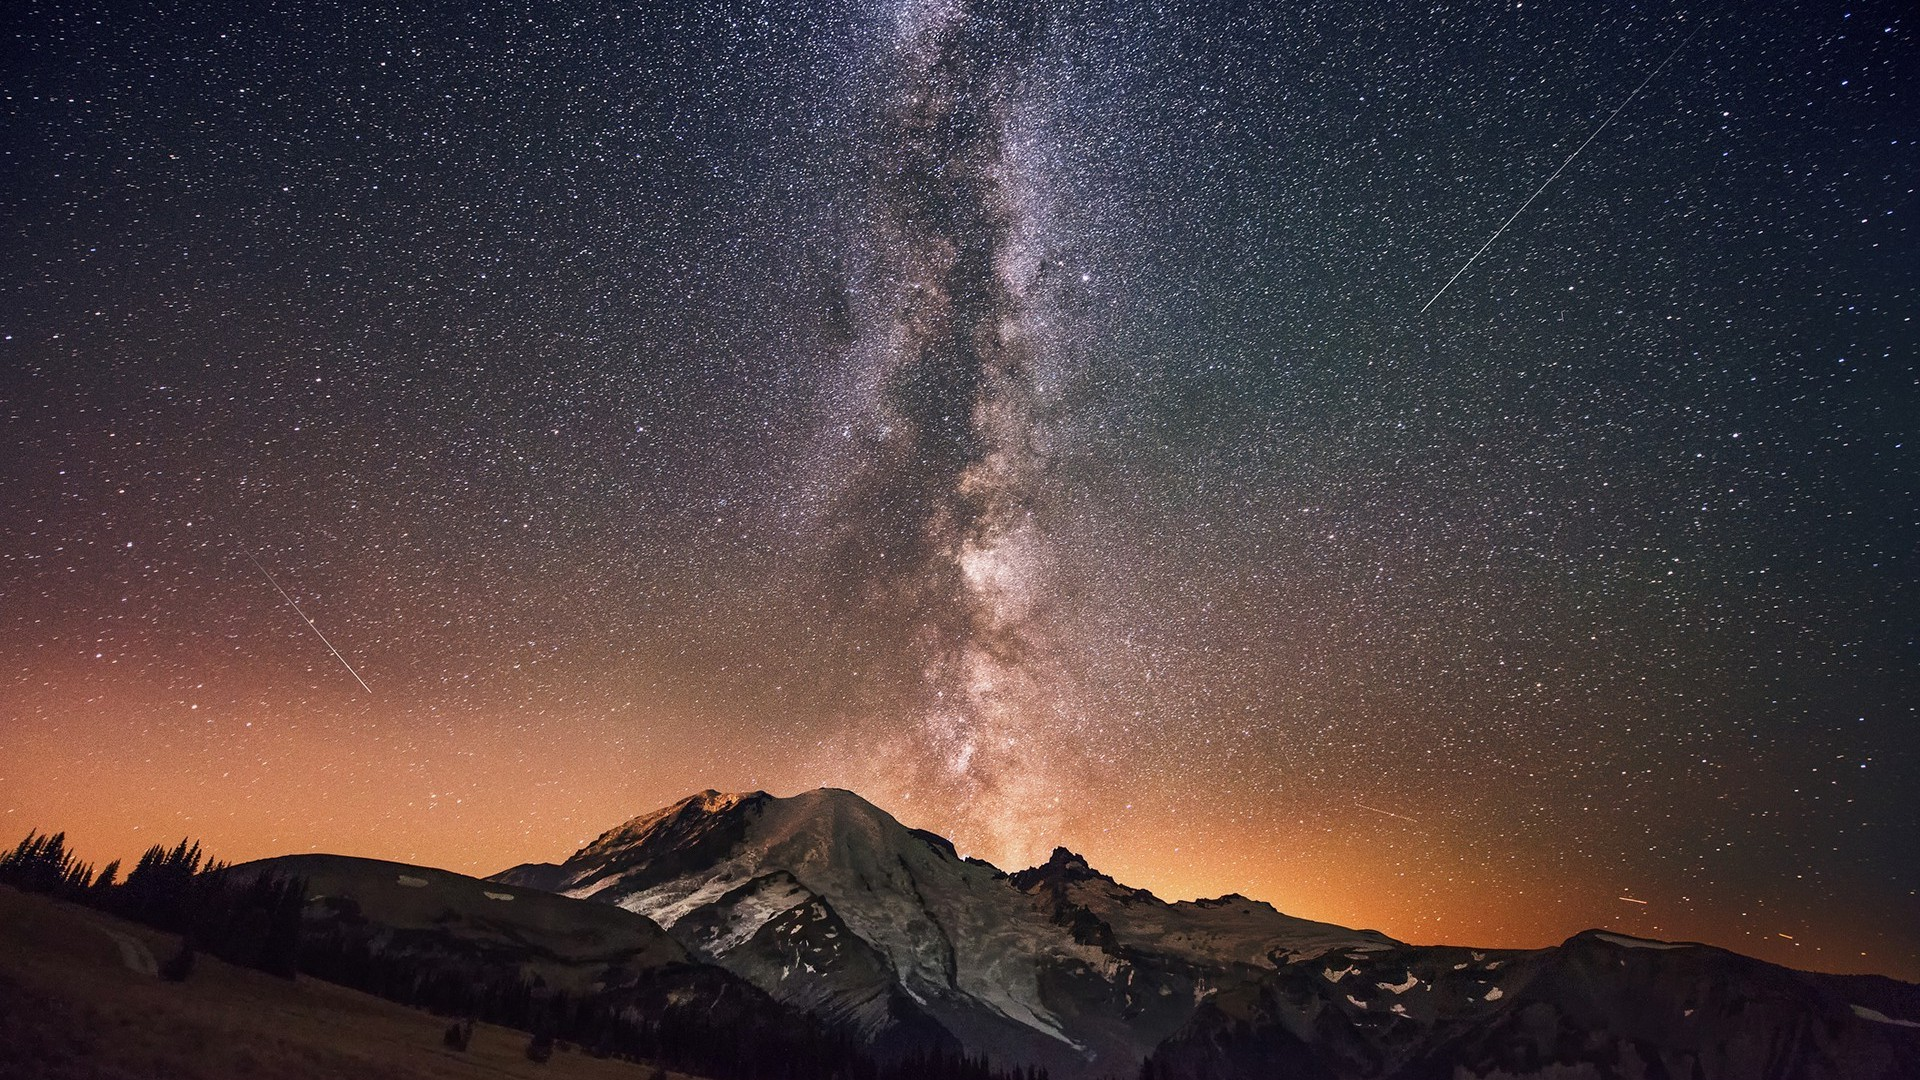 Download Milky Way above the mountain peak wallpaper 1920x1080